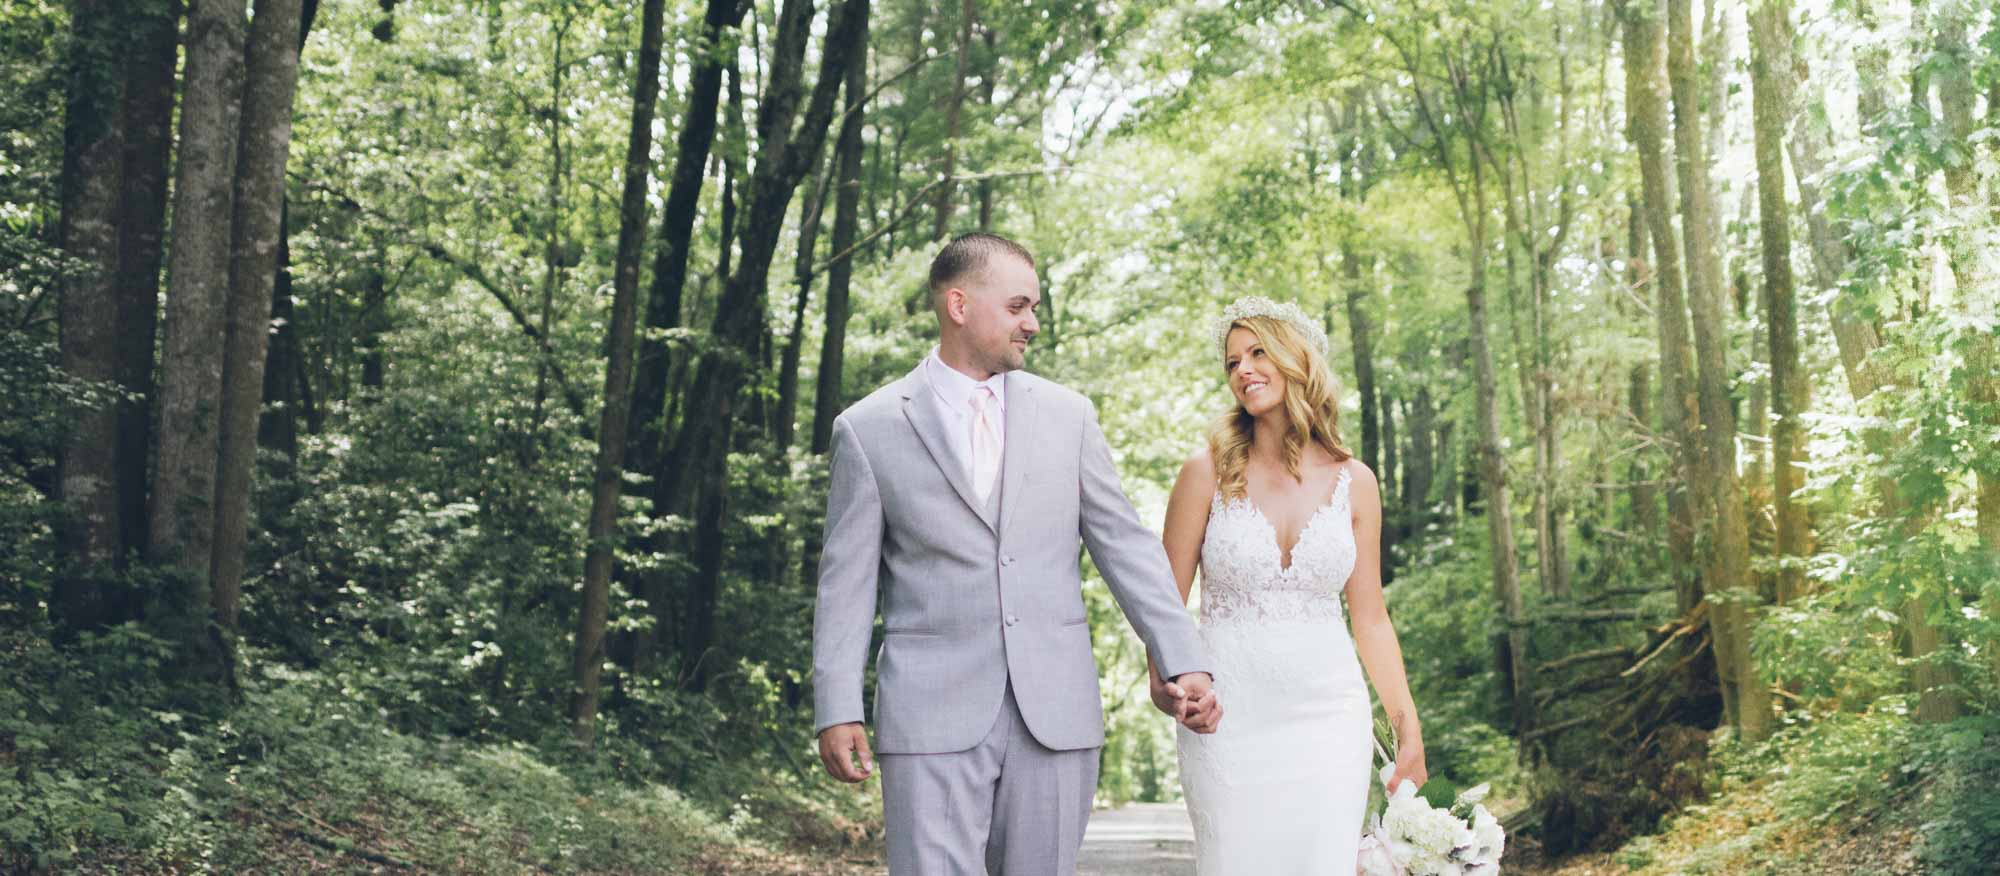 newlyweds walking at a forest preserve, photographed by Eivan's in Richmond